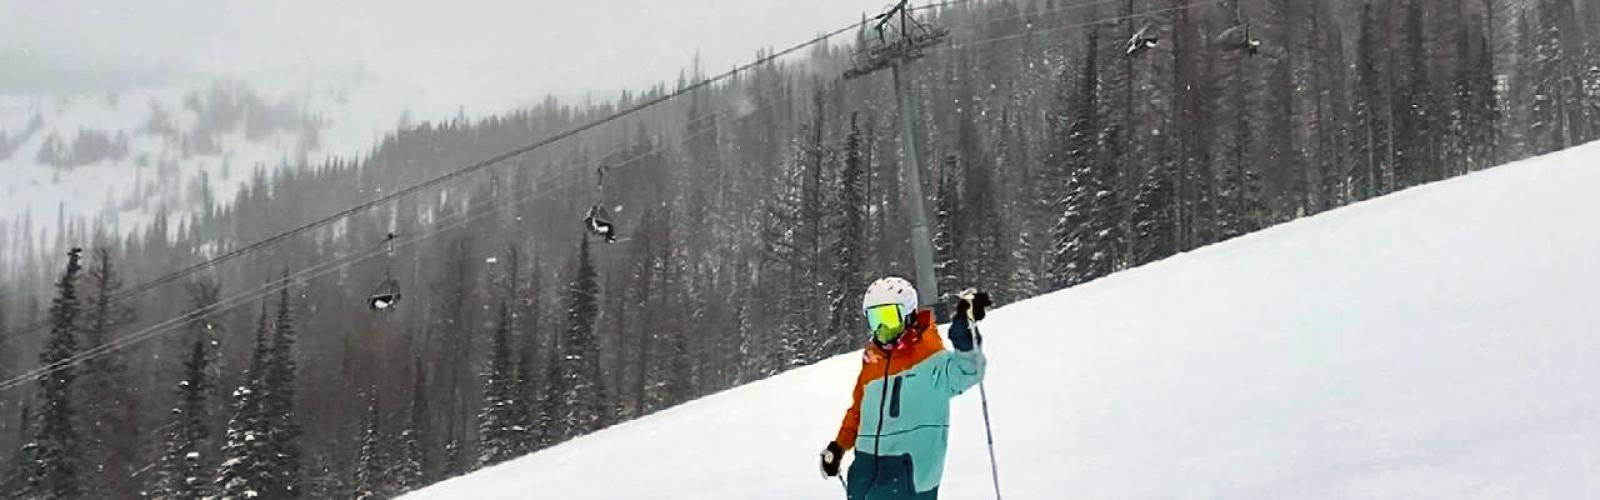 Skier waving on stormy day